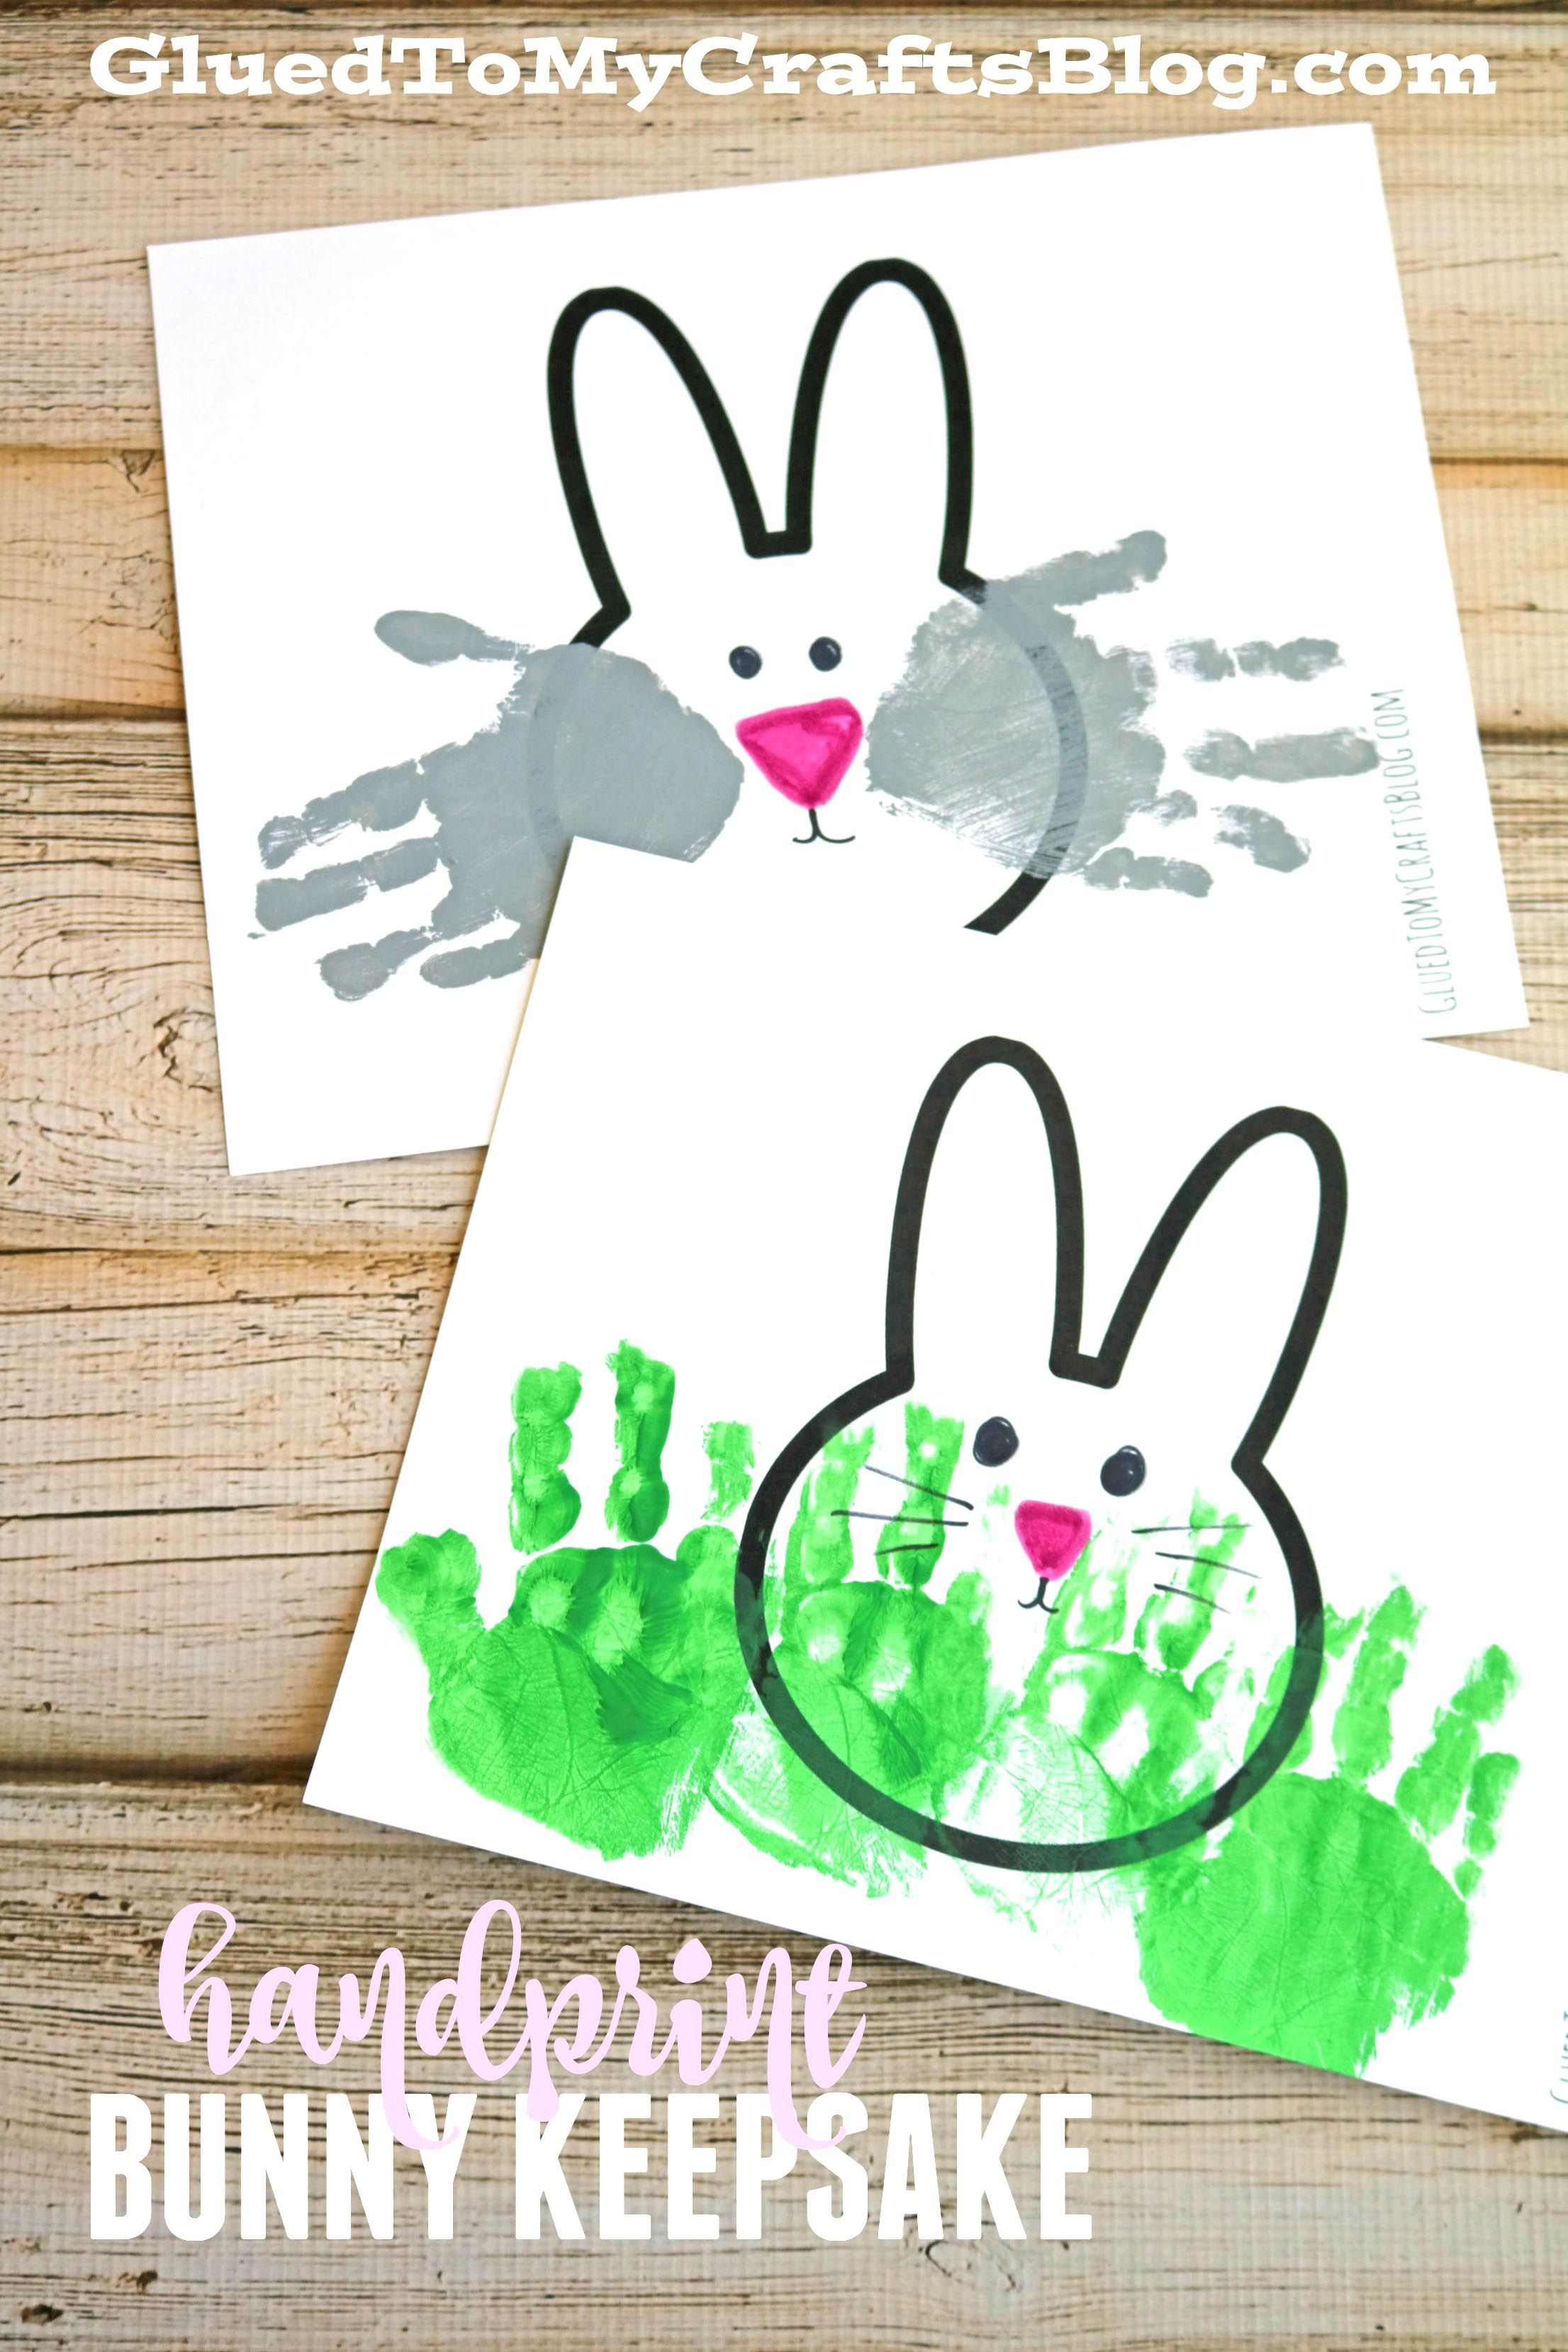 Exceptional Free Craft Ideas For Kids Part - 3: Handprint Bunny Keepsakes W/free Printable Template. Kids Holiday CraftsSpring  ...